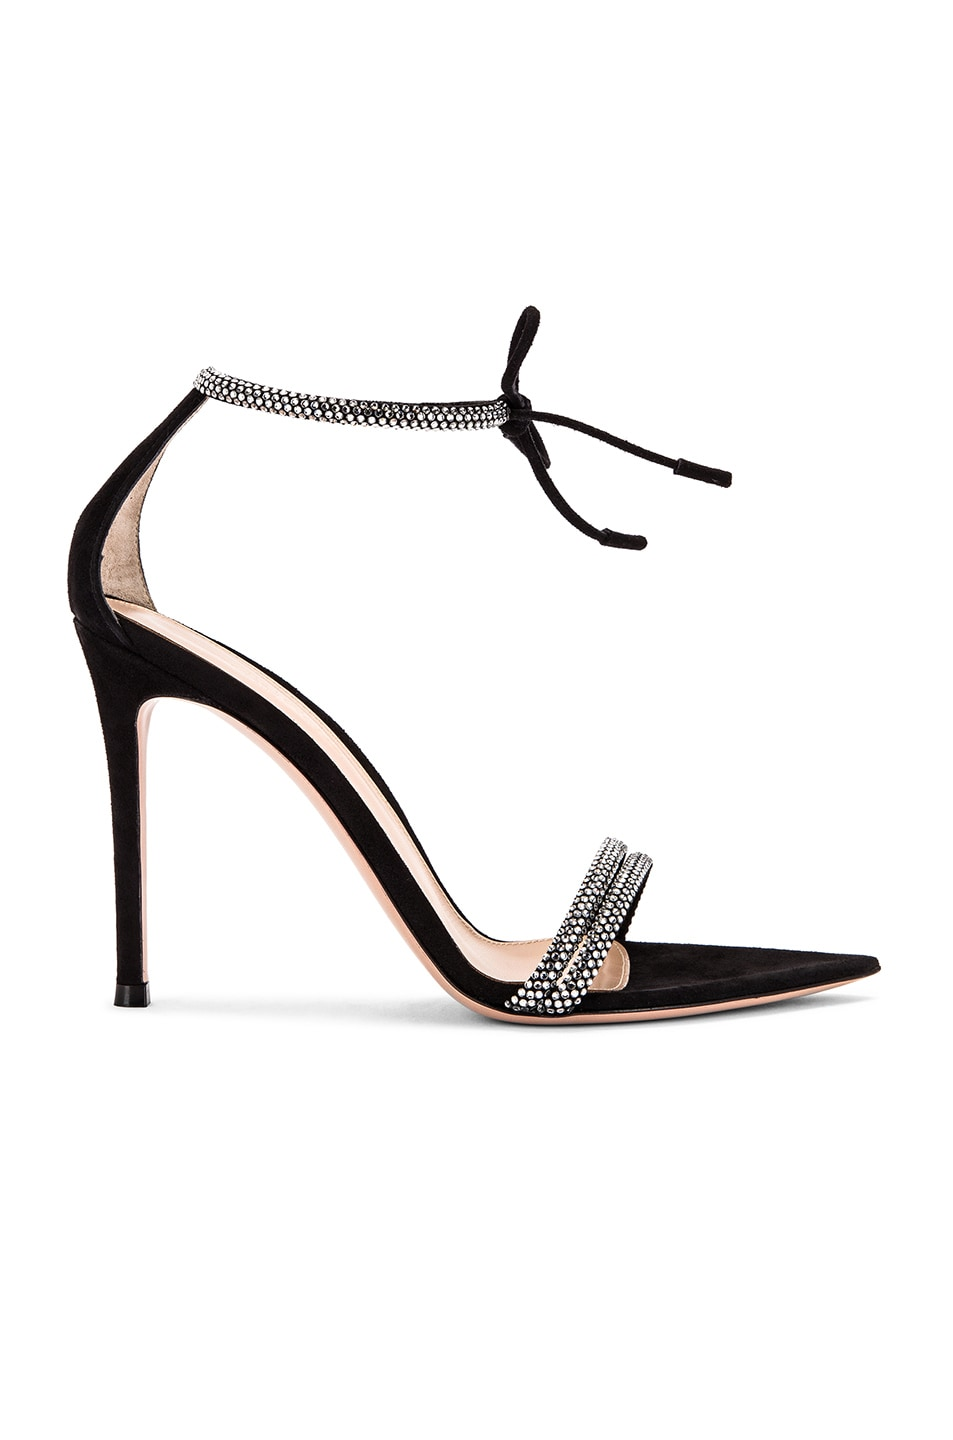 Image 1 of Gianvito Rossi Camoscio Crystal Ankle Strap Heels in Black